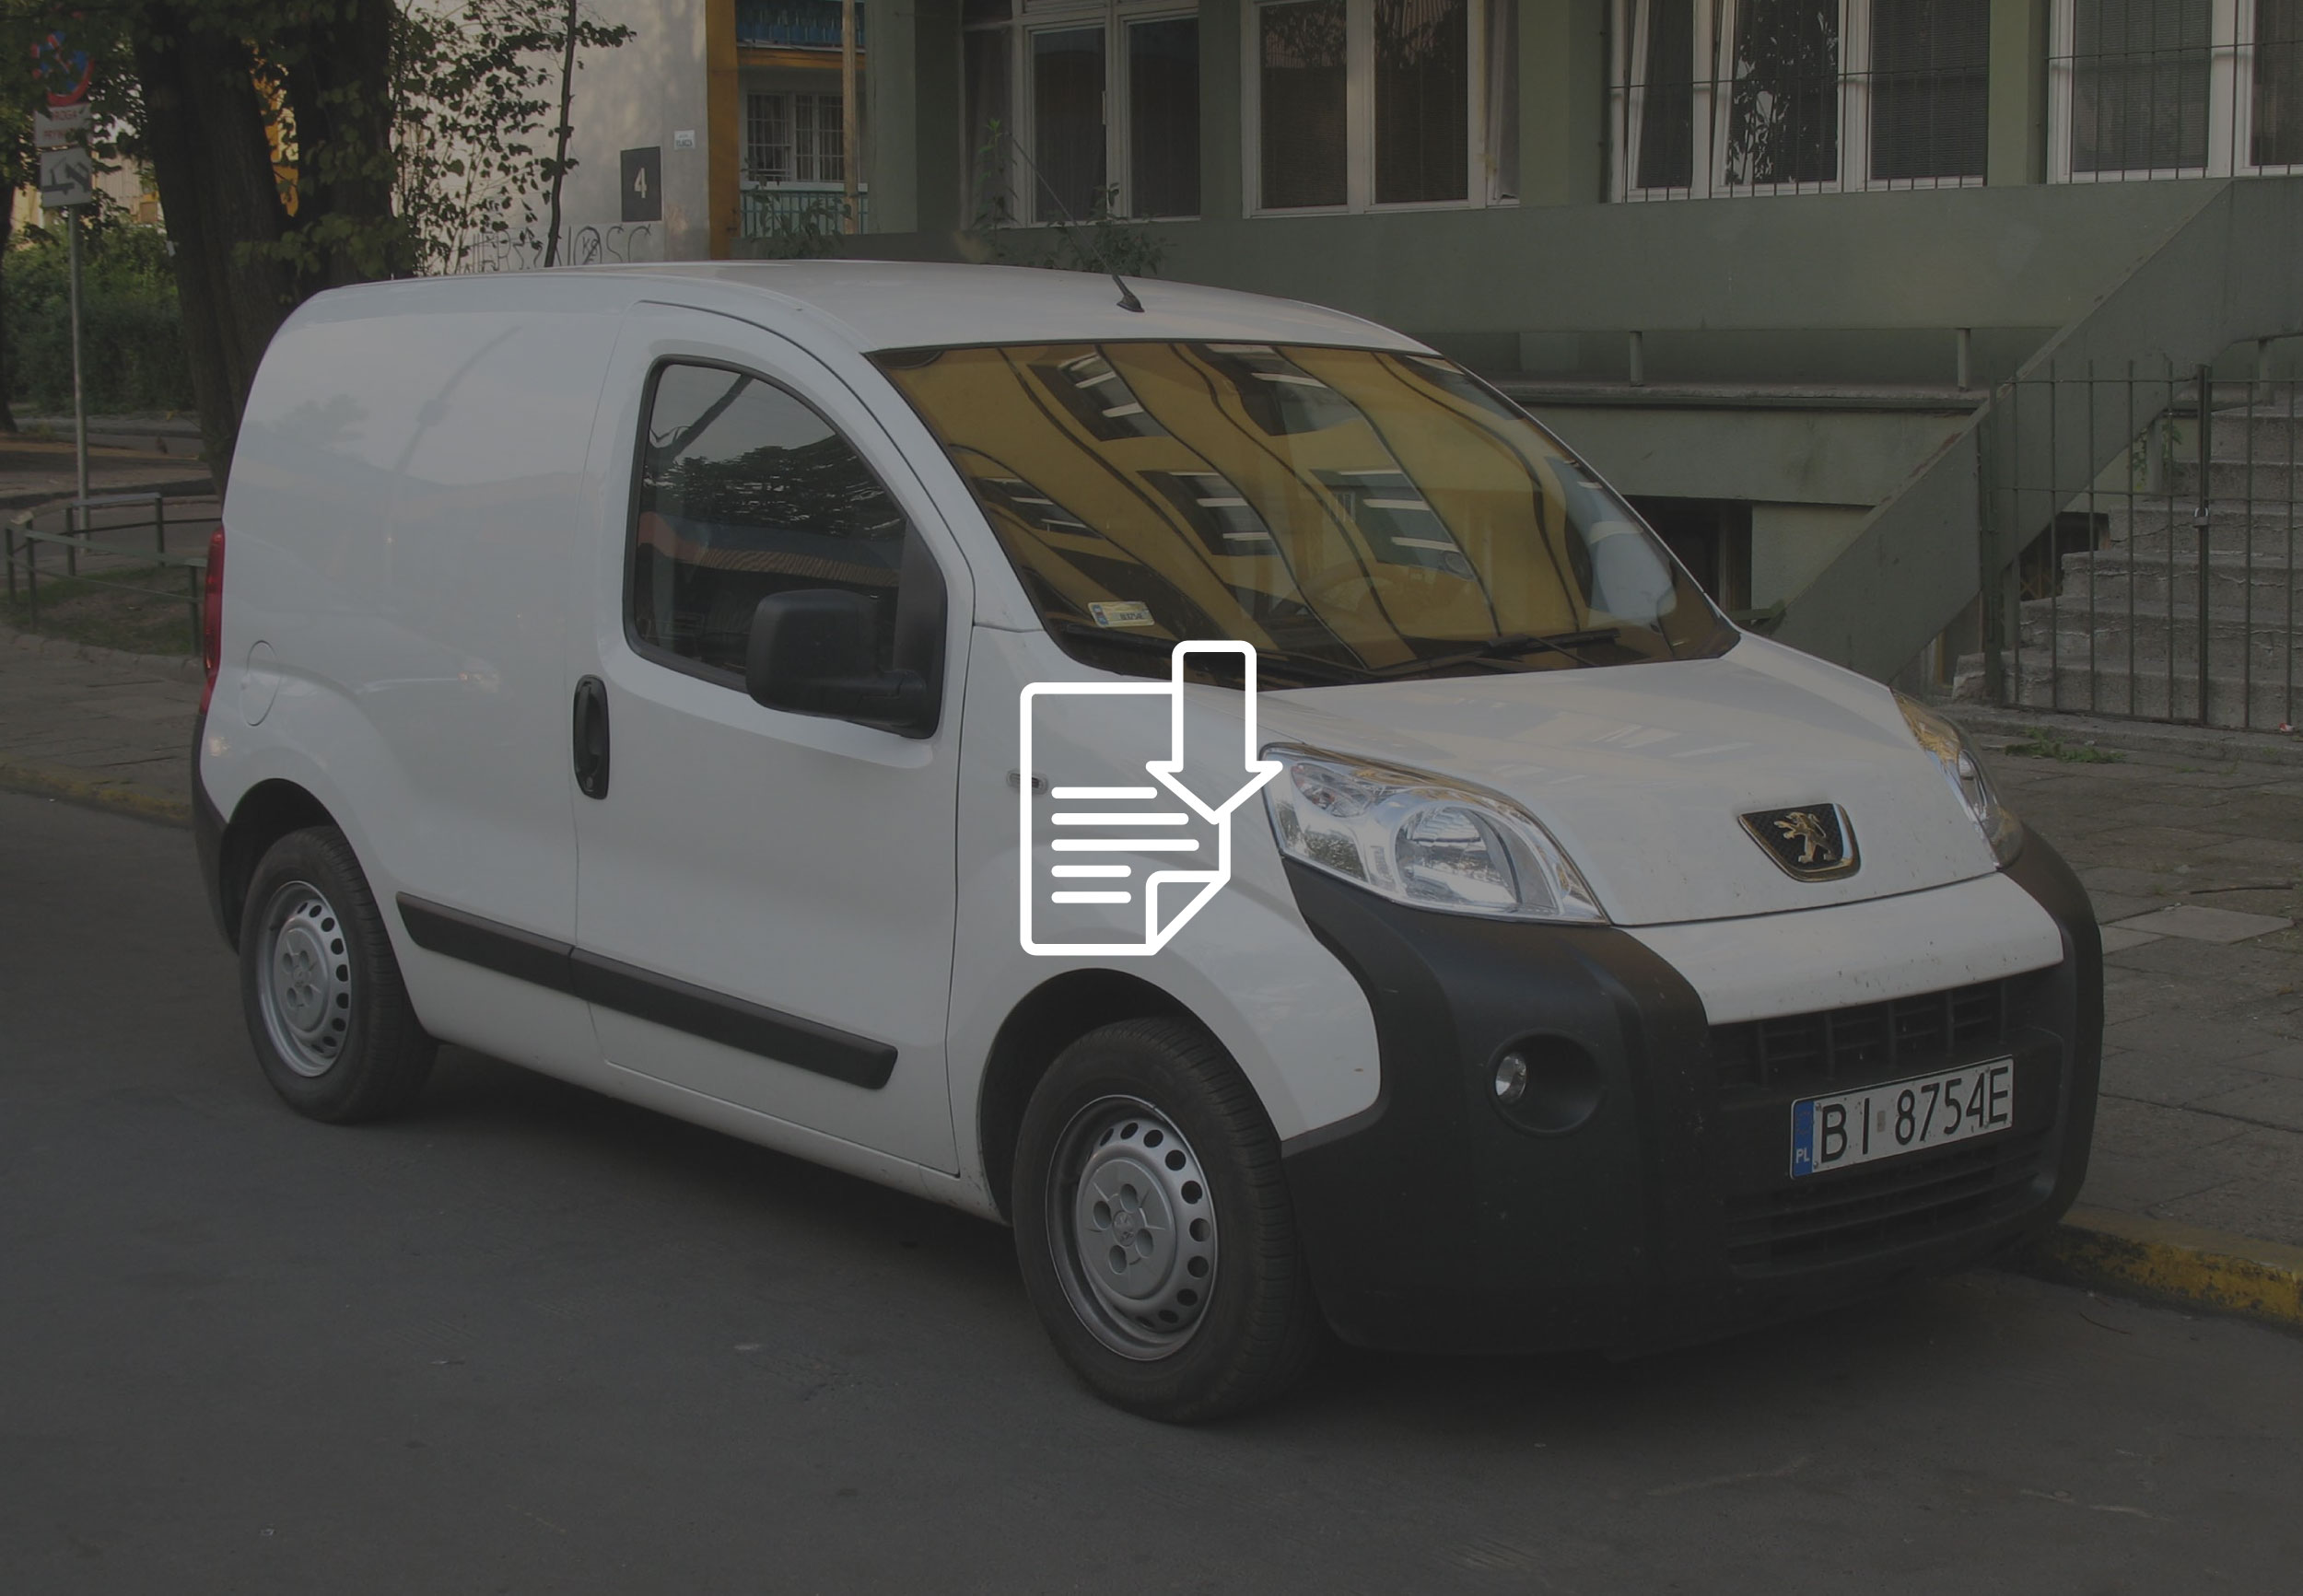 PEUGEOT BIPPER fitting instructions ufo temporary